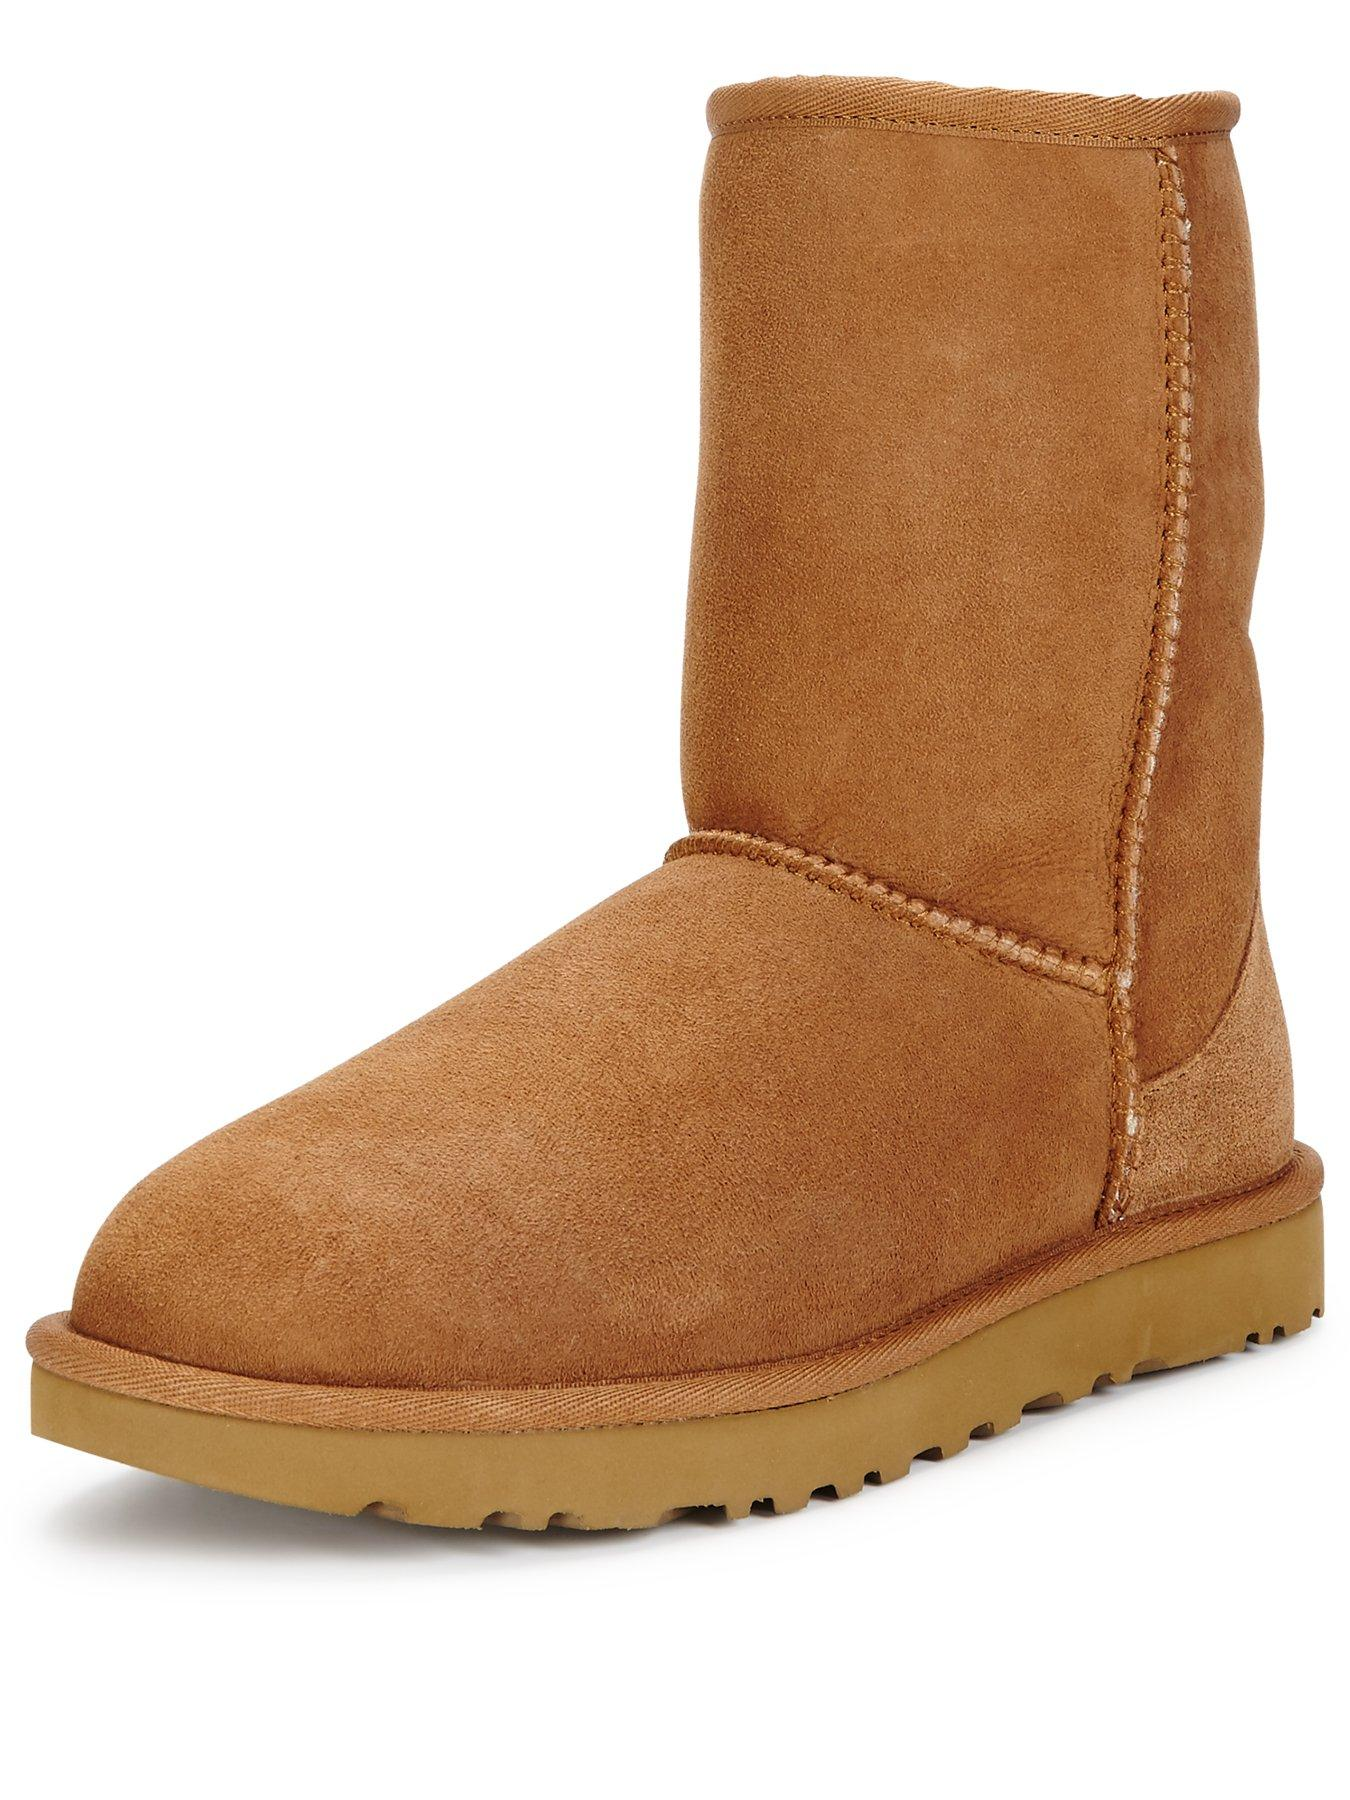 official ugg boots sale uk